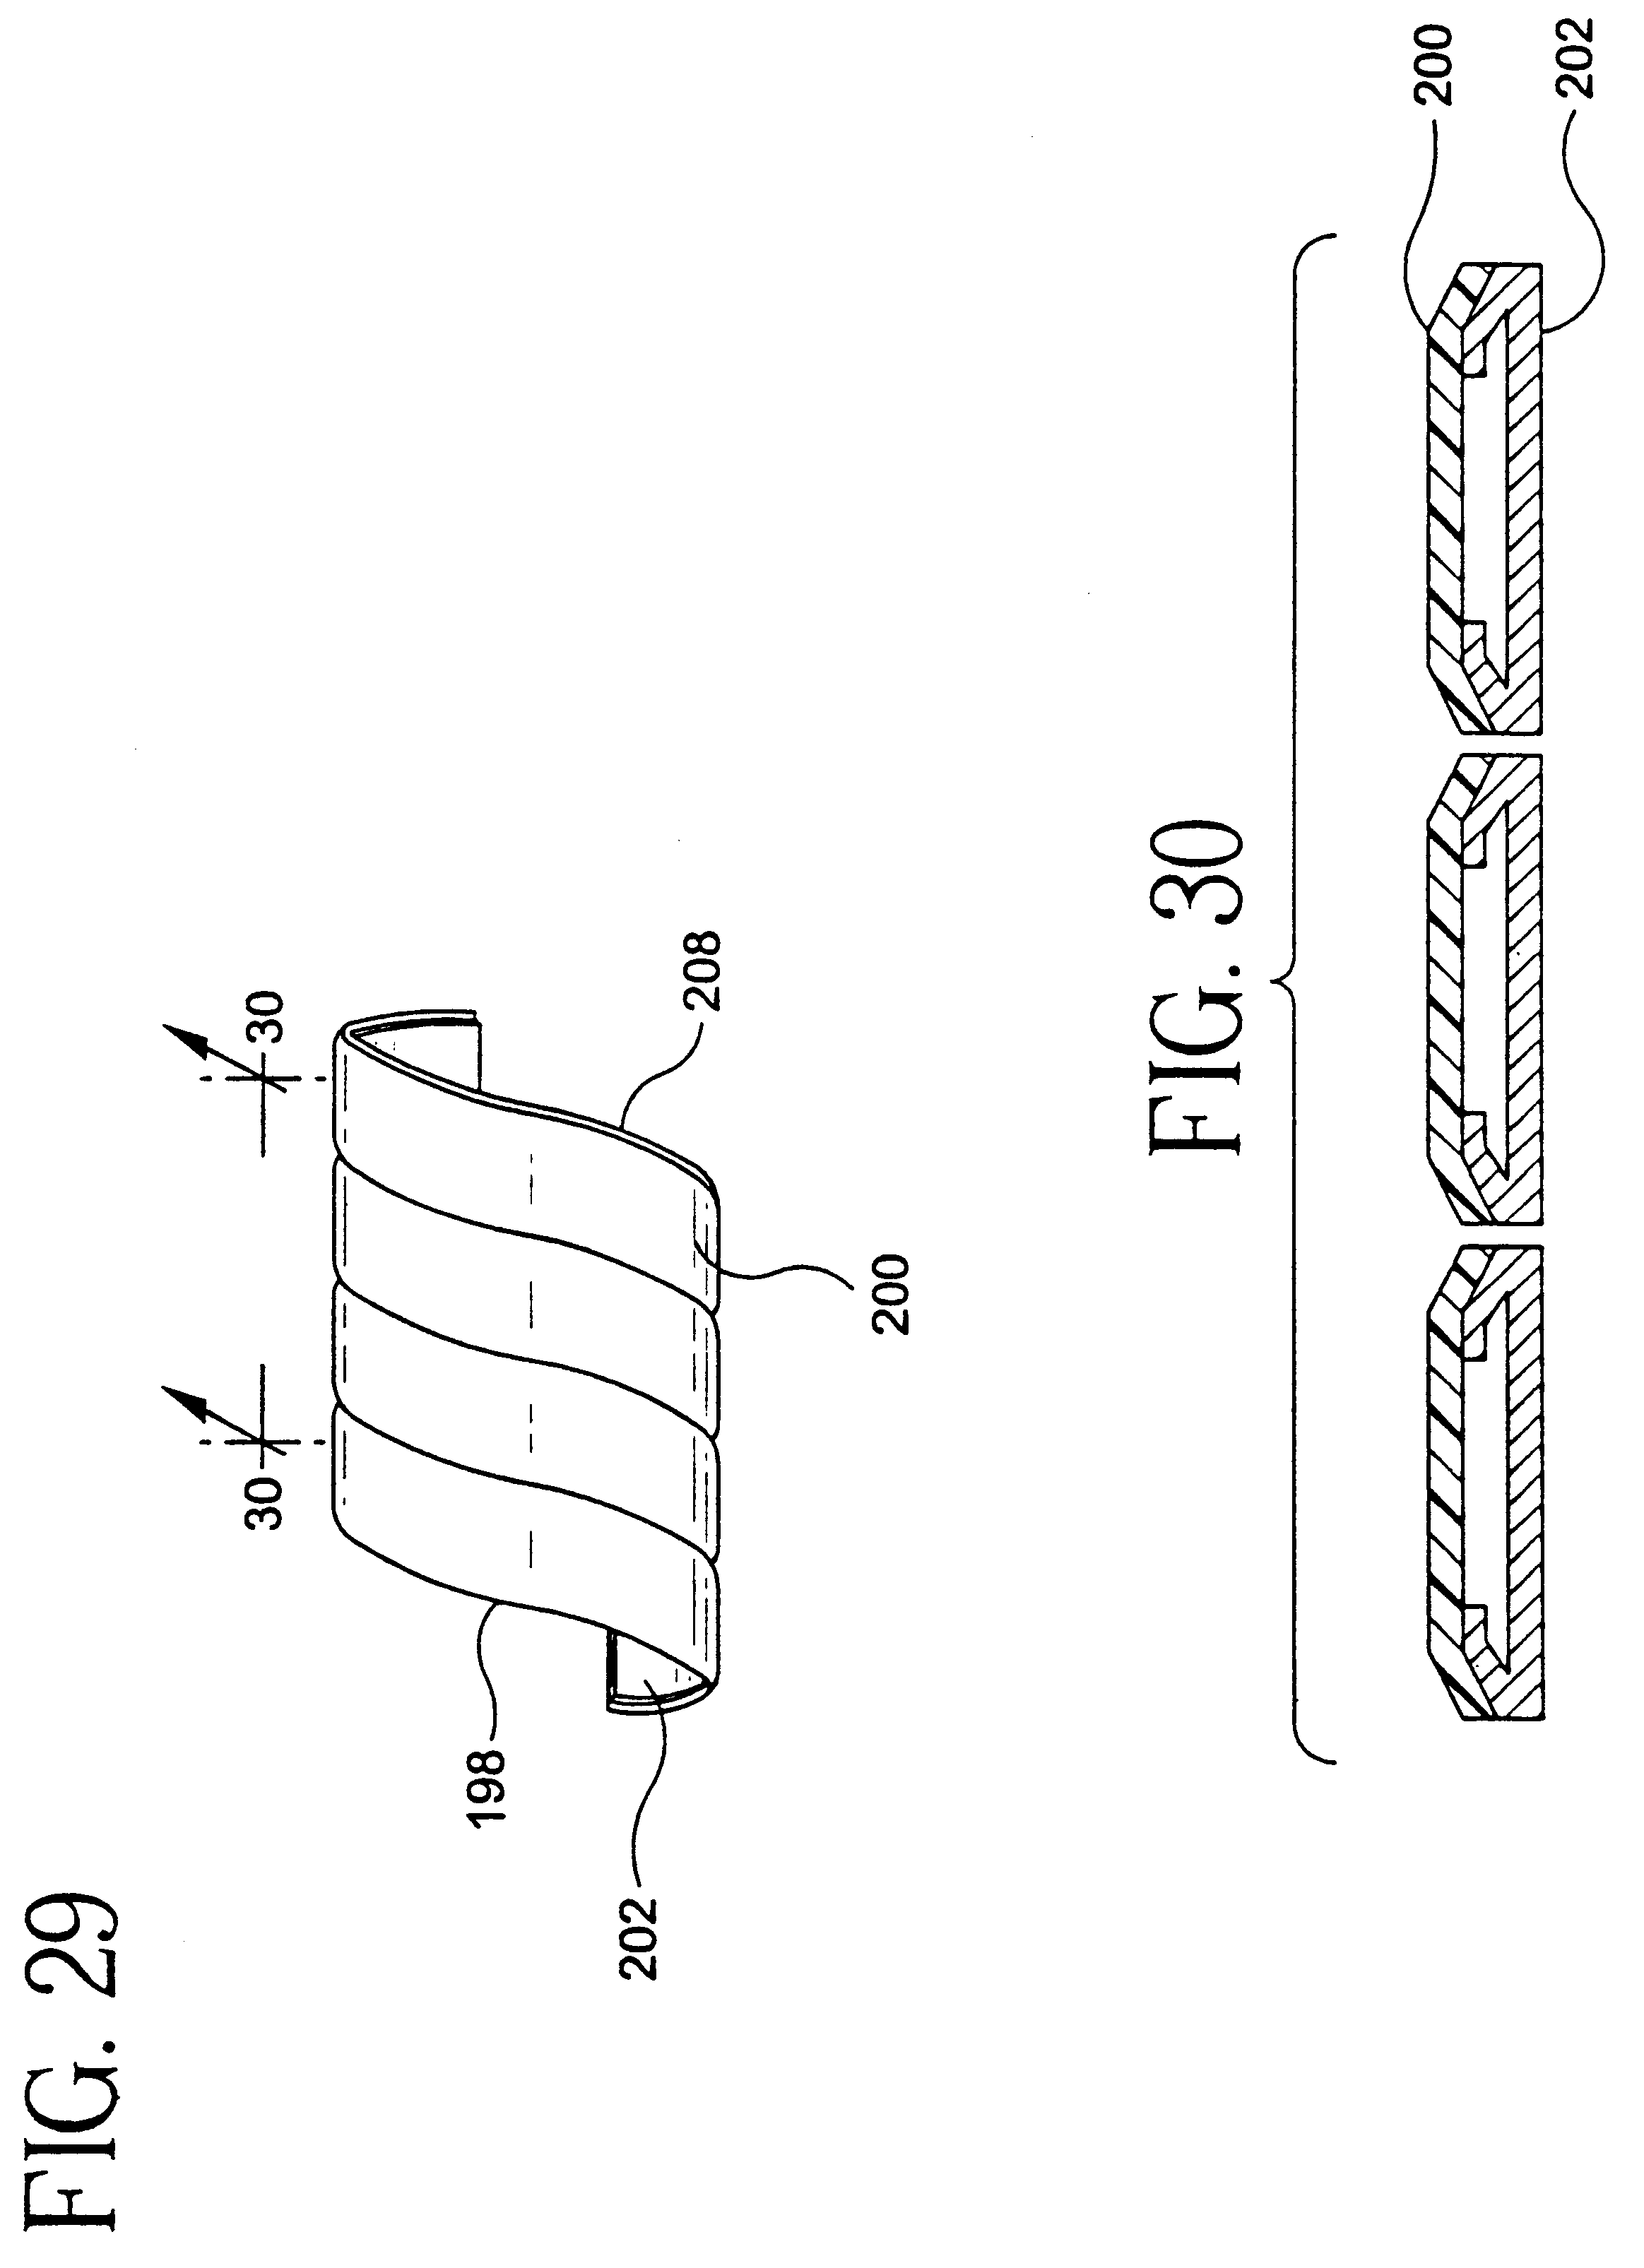 Method of manufacturing composite strips by continuous